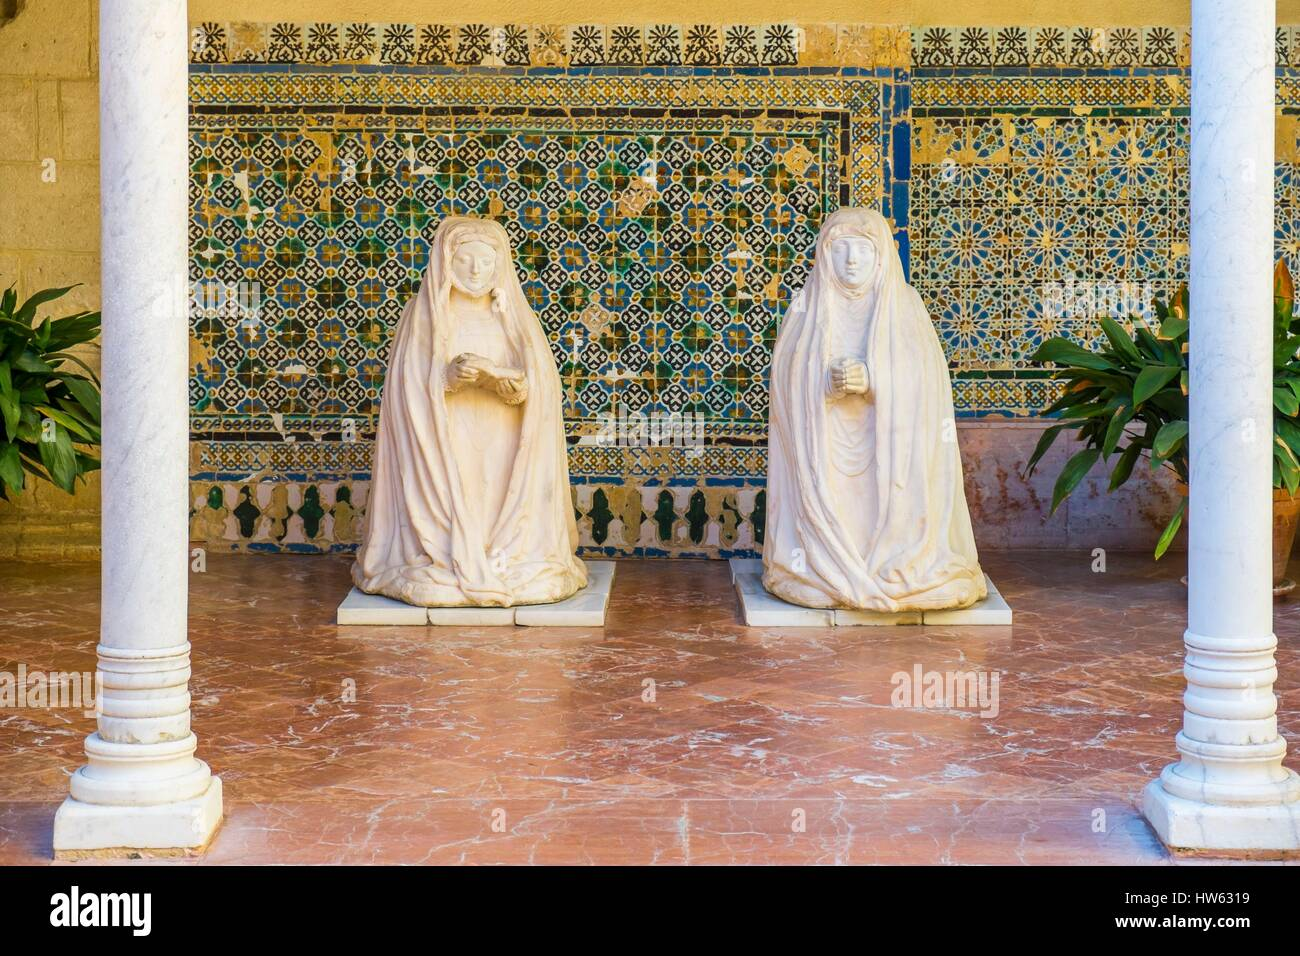 Spain, Andalusia, Seville, Isla de la Cartuja, the Monastery of the Cartuja Stock Photo